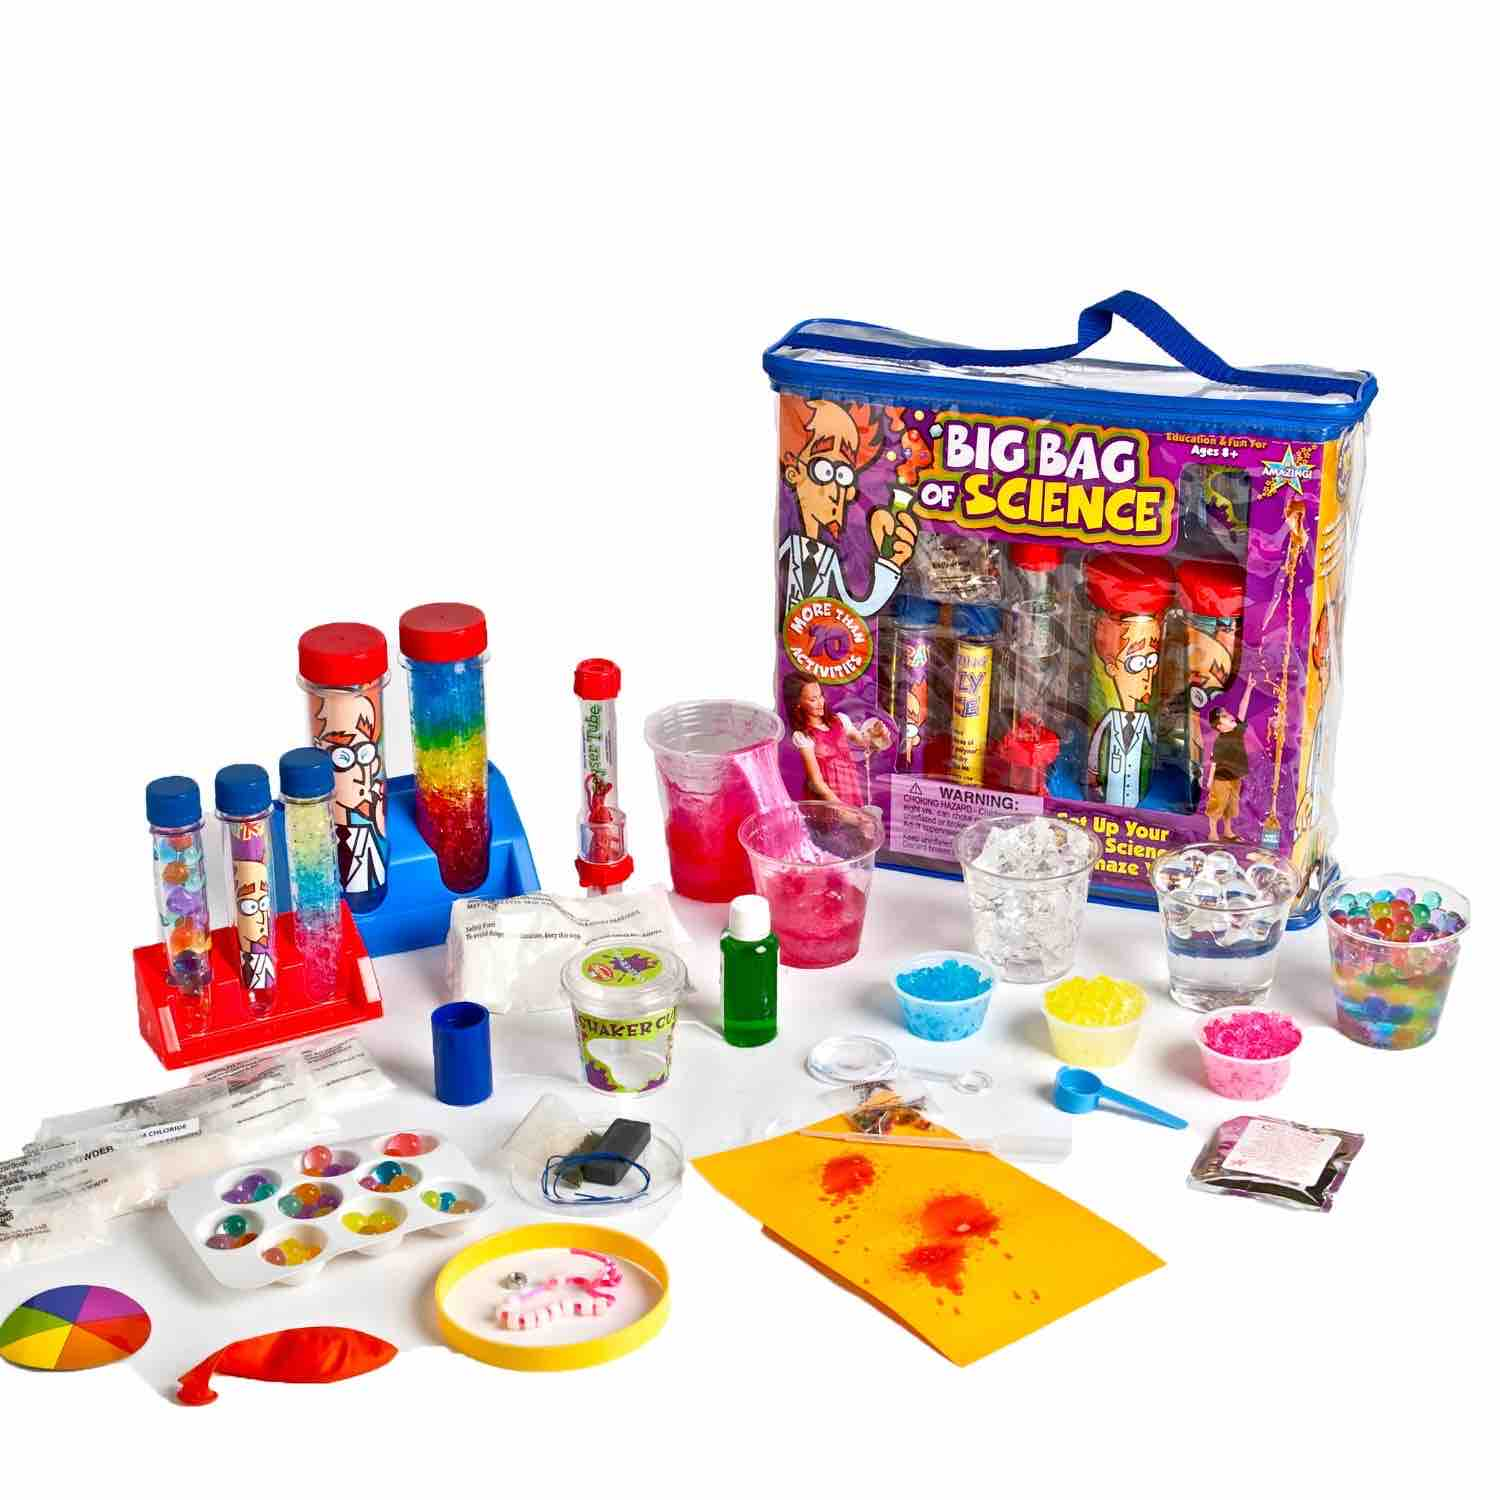 science project kits Choose from a wide range of winning cool science fair science kits elementary, middle school and high school projects and experiments.